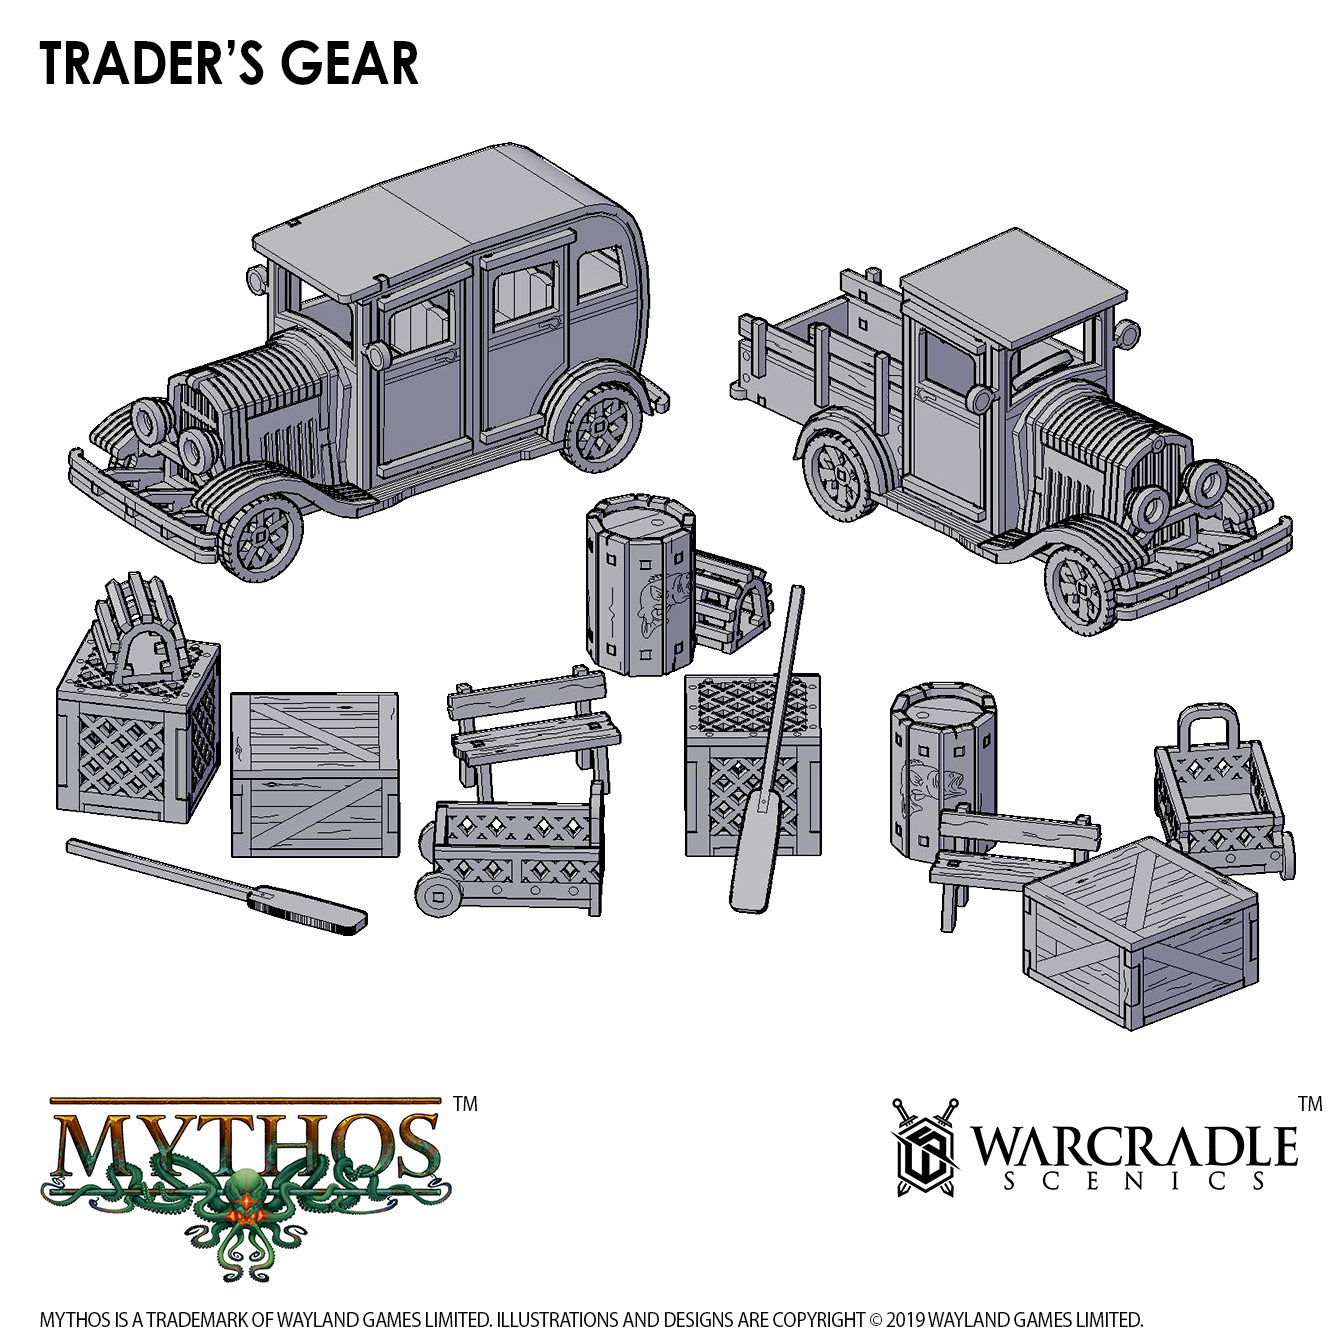 Scatter terrain is an important part of any tabletop skirmish game.